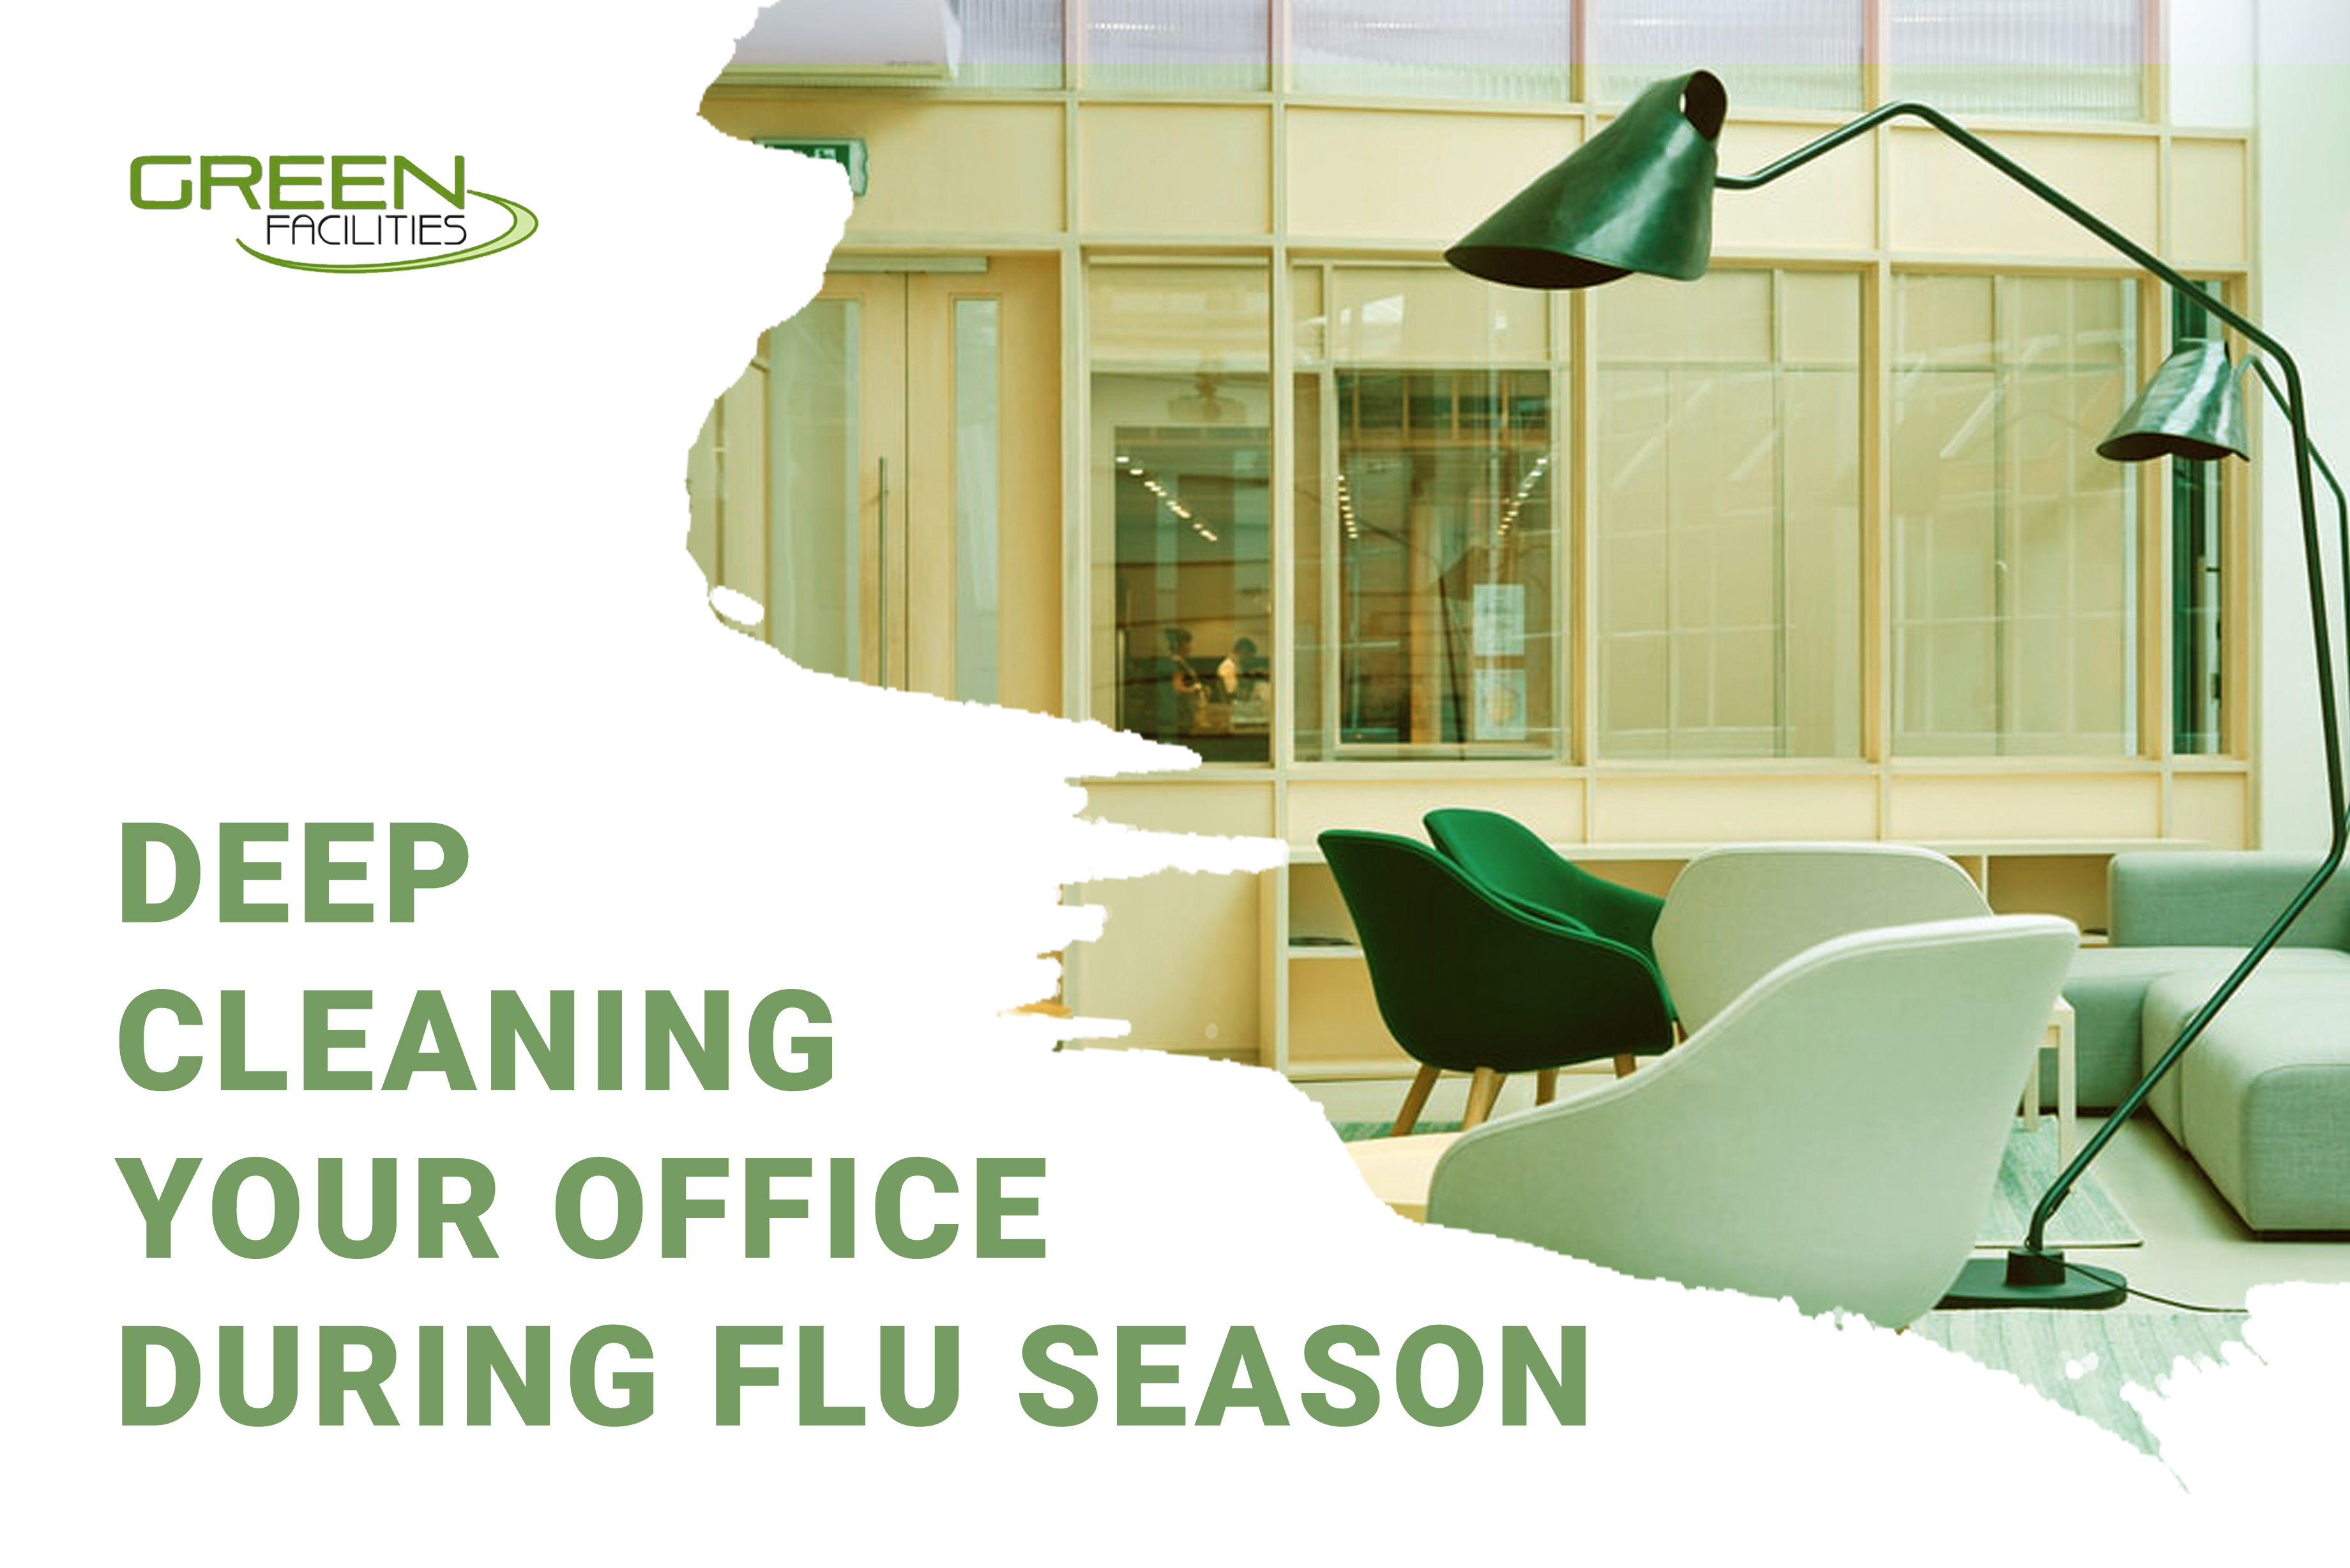 Deep Cleaning Your Office During Flu Season